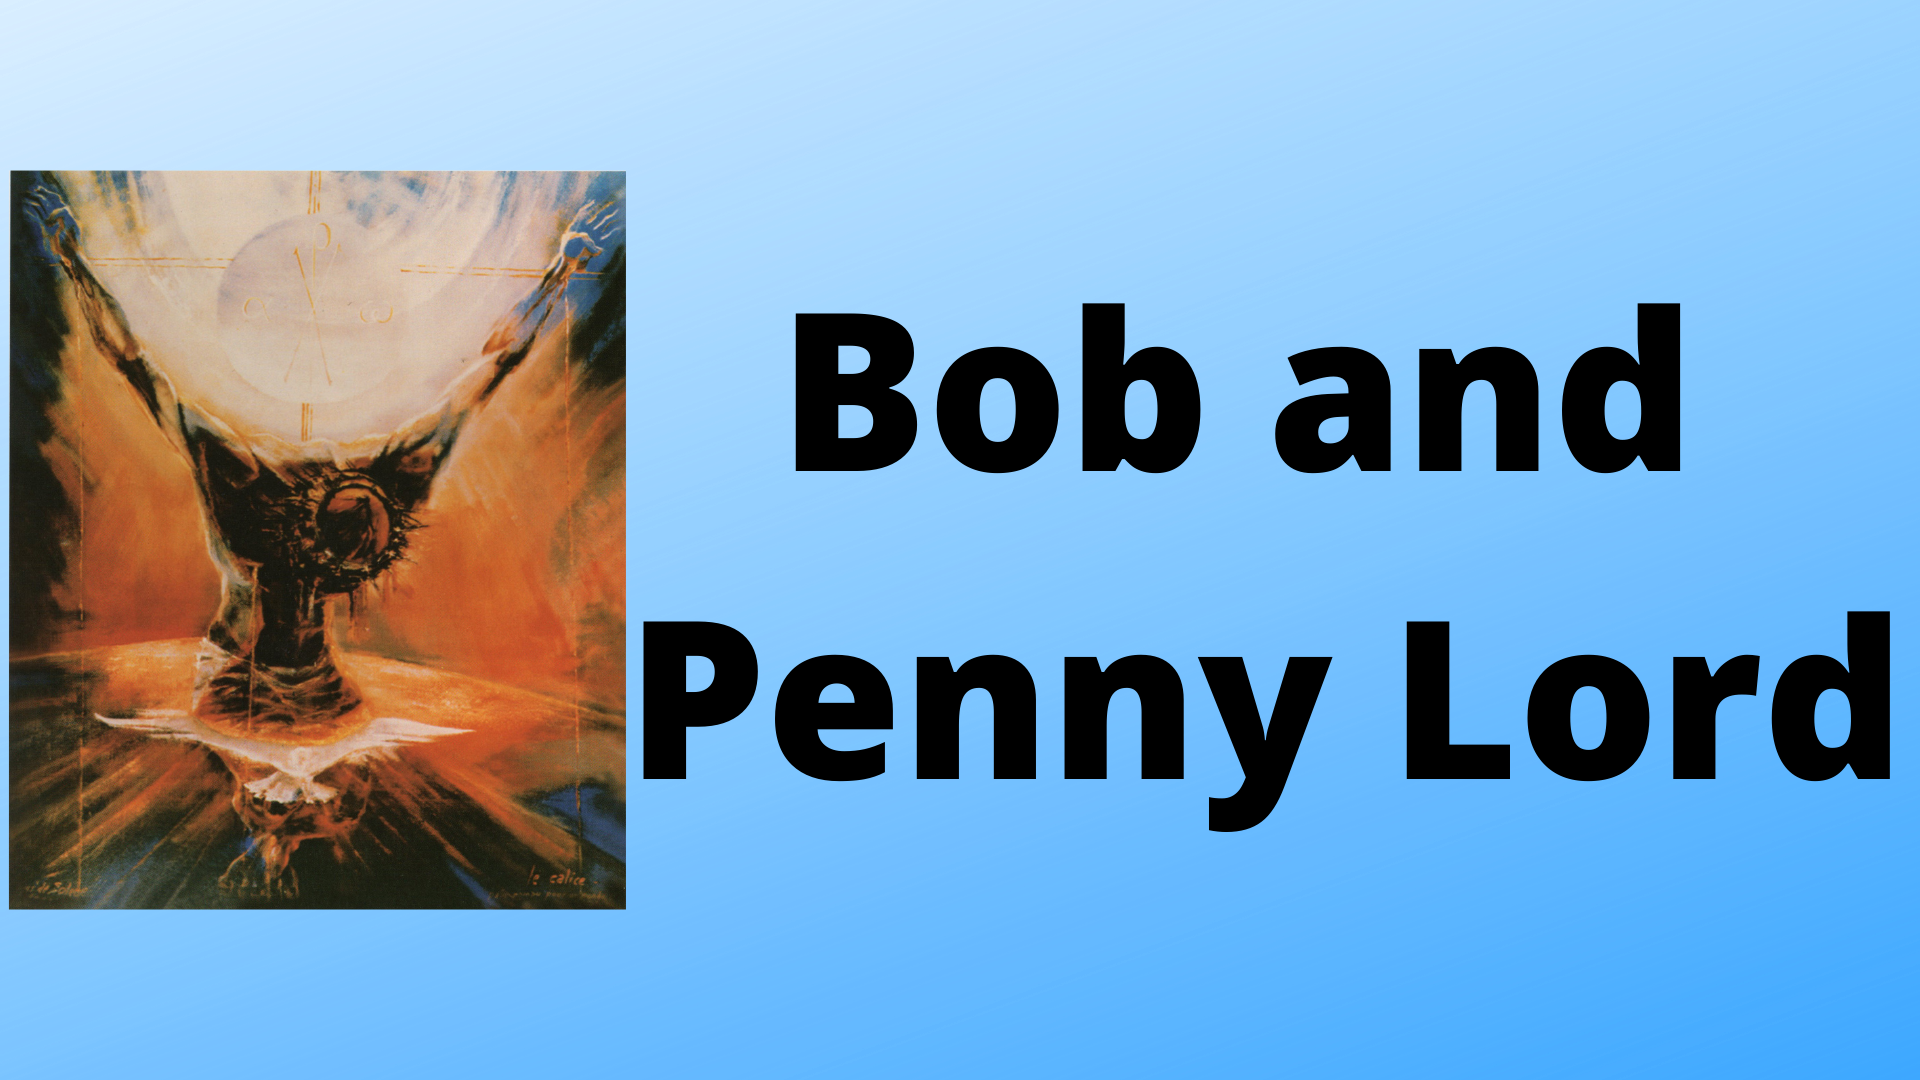 Bob and Penny Lord